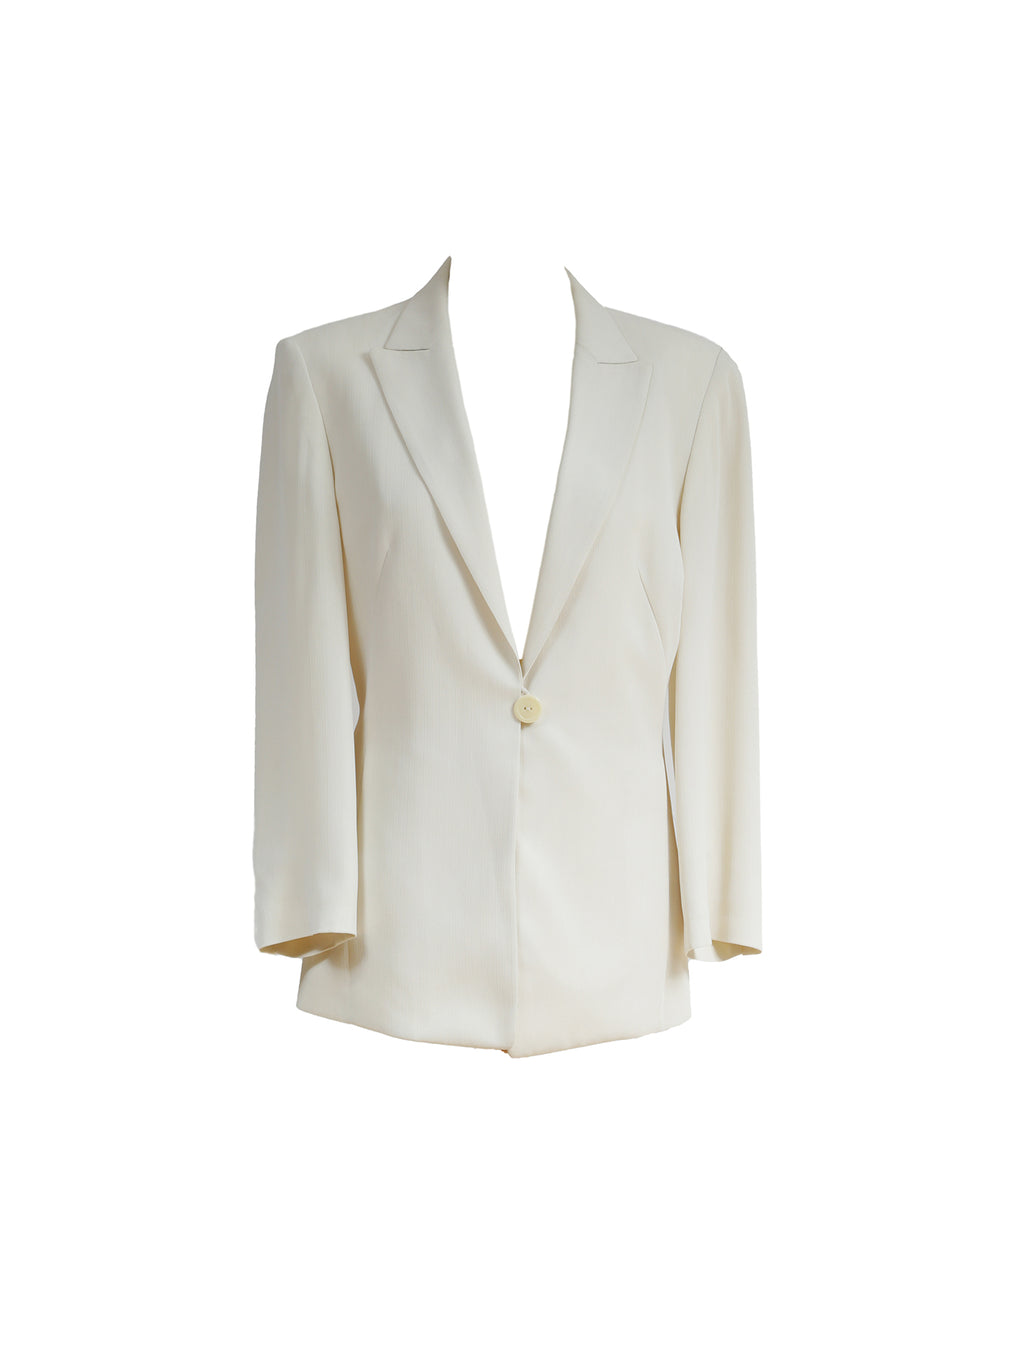 Betty Barclay Cream Blazer Size 40 (EU)